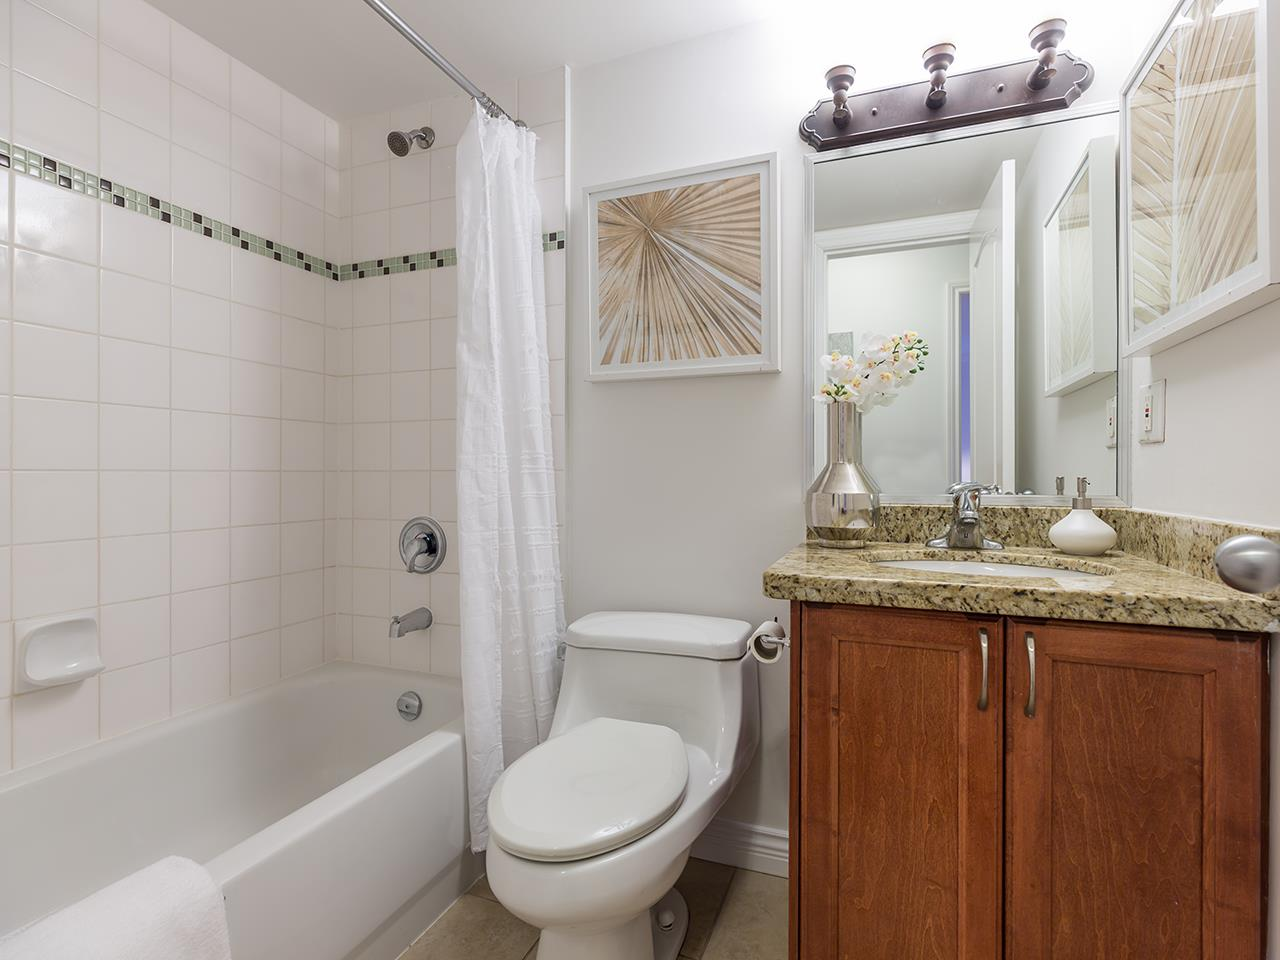 Condo Apartment at 219 1550 BARCLAY STREET, Unit 219, Vancouver West, British Columbia. Image 10